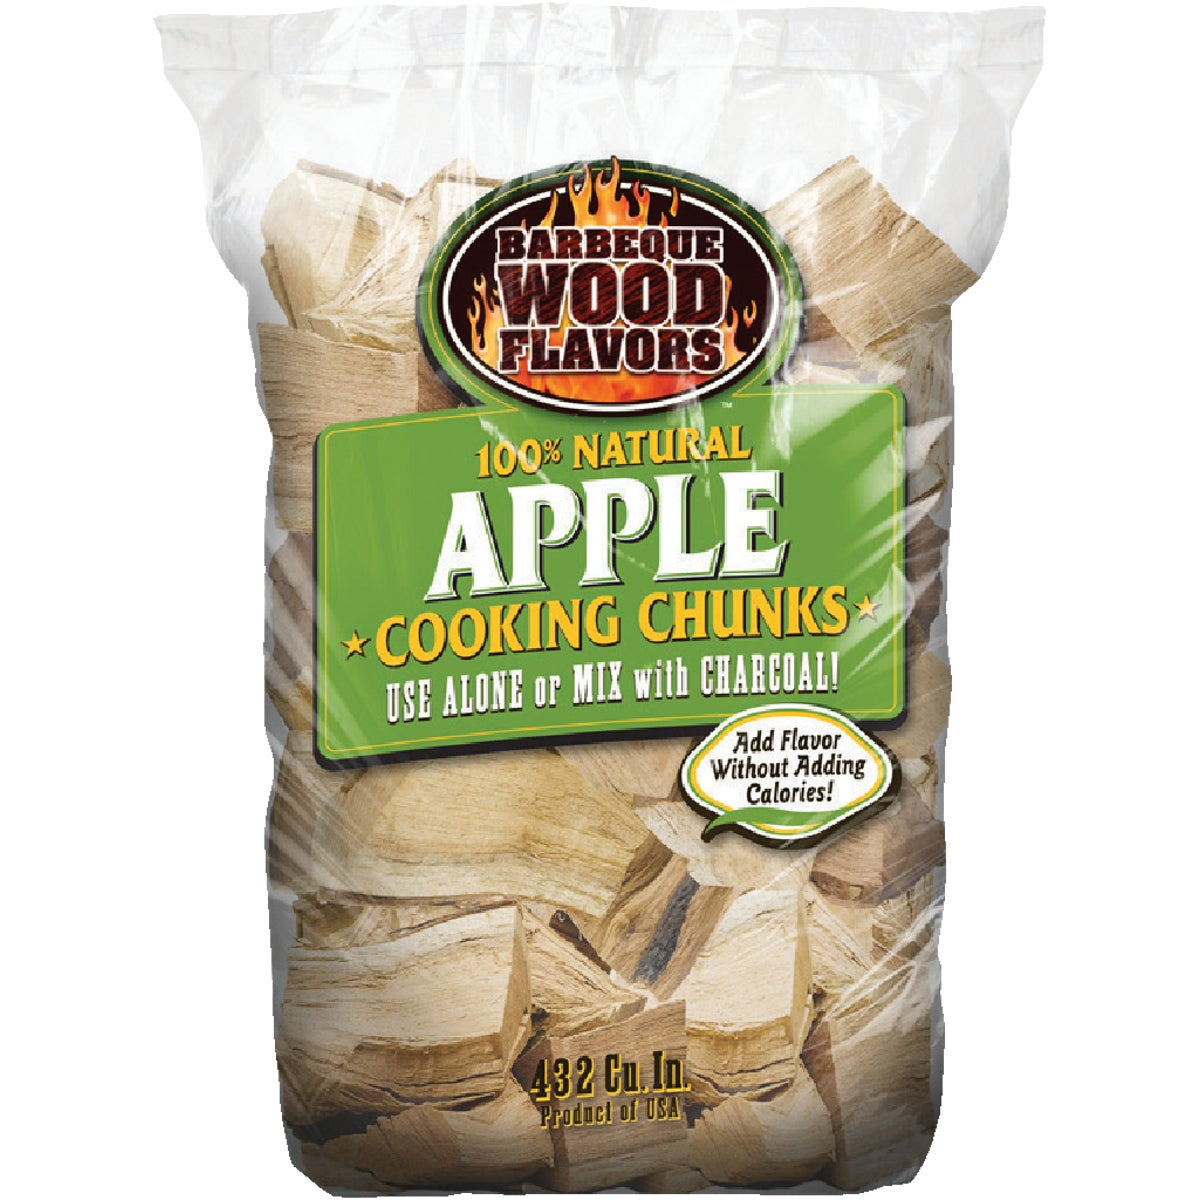 10LB APPLE WOOD CHUNKS - 60026 by Barbeque Wood Flavor